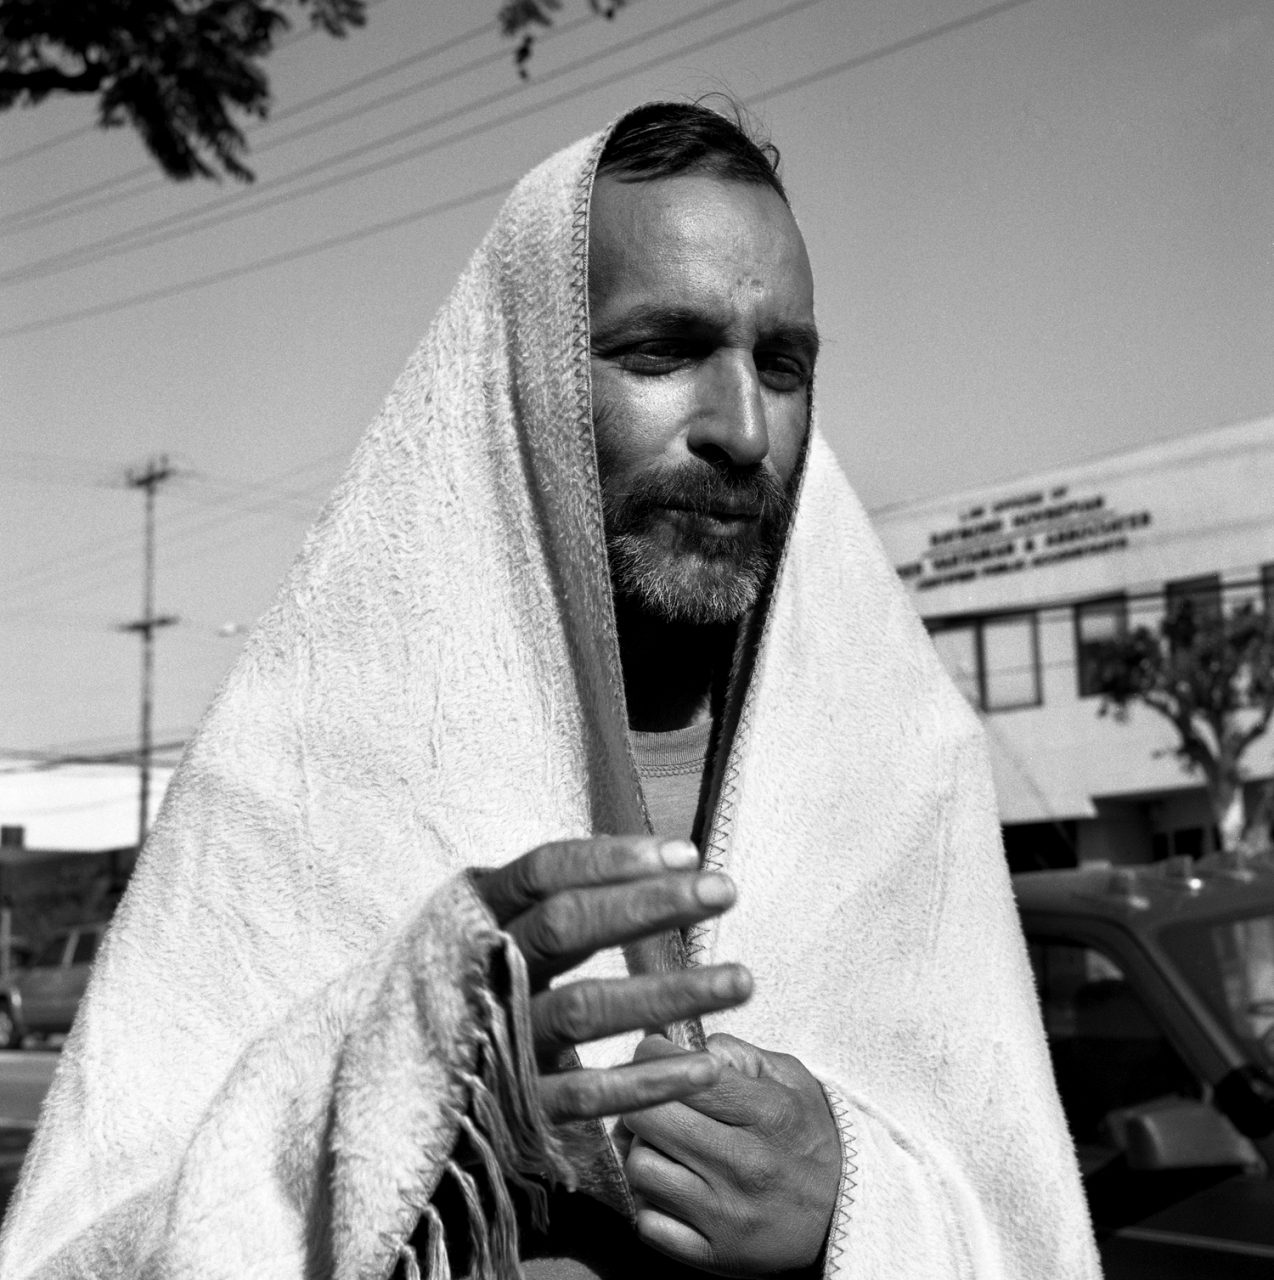 Gypsy Man with Blanket